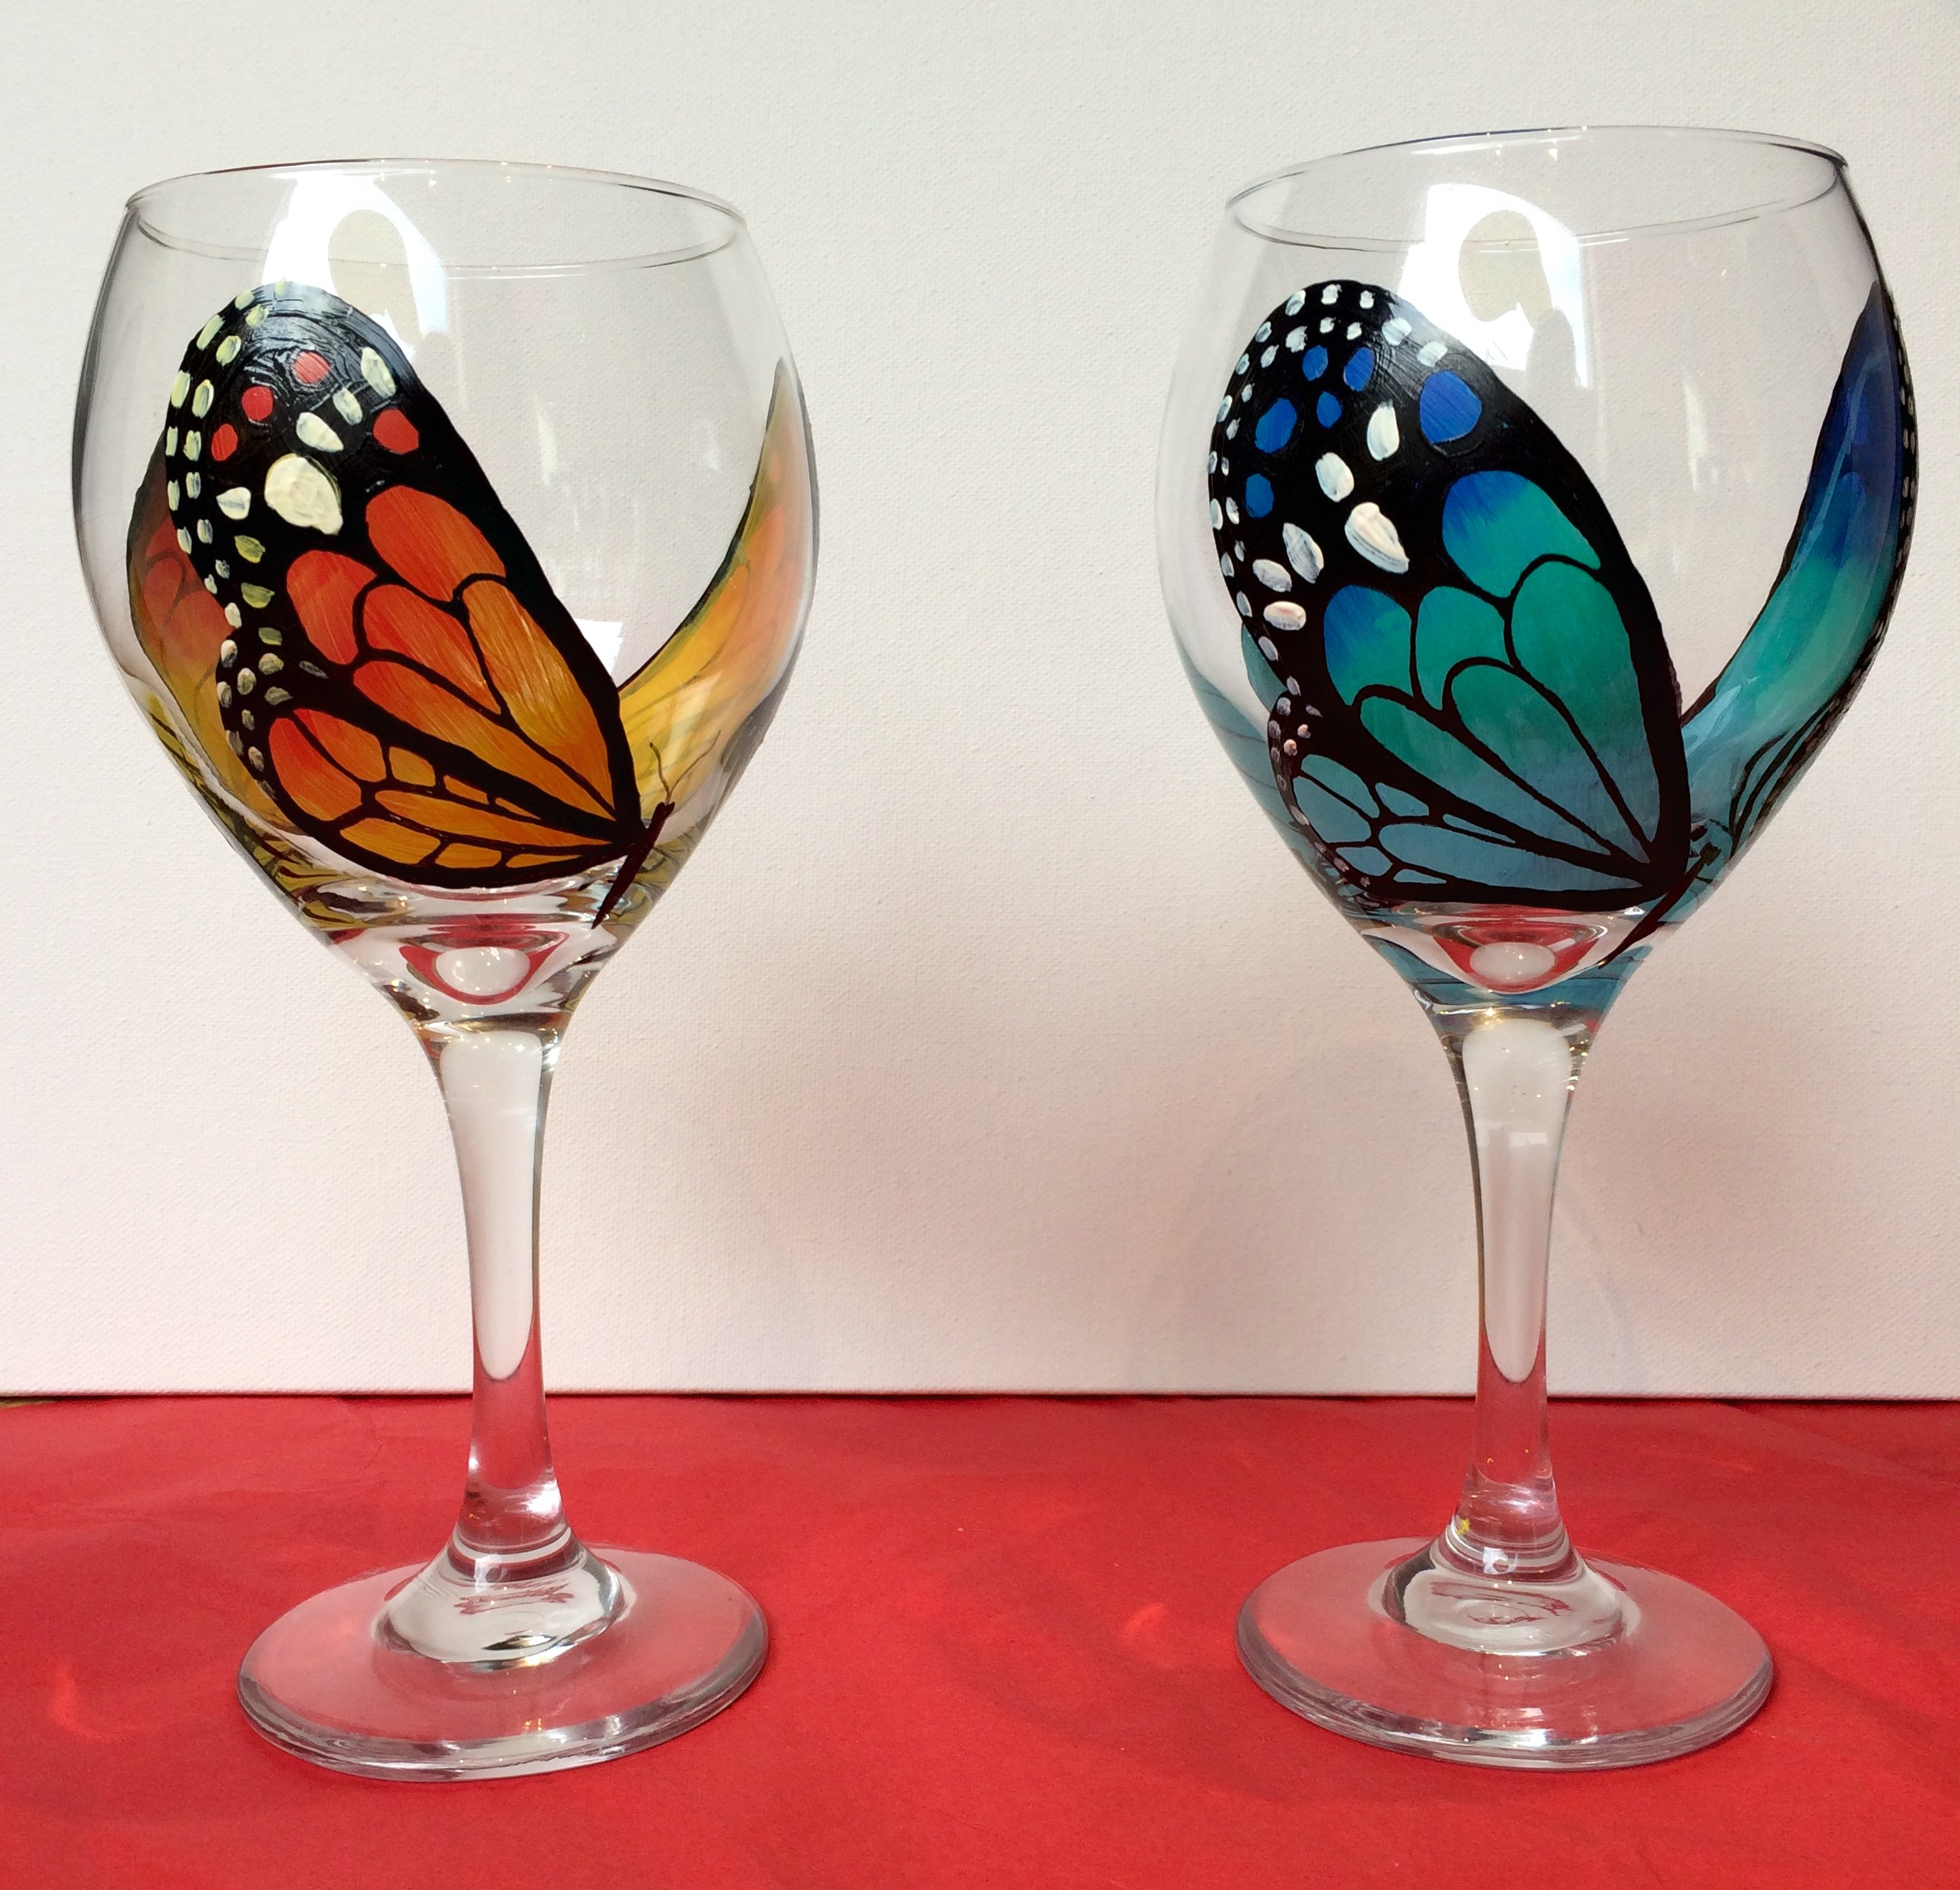 Butterfly wine glasses paint fun studio Images of painted wine glasses